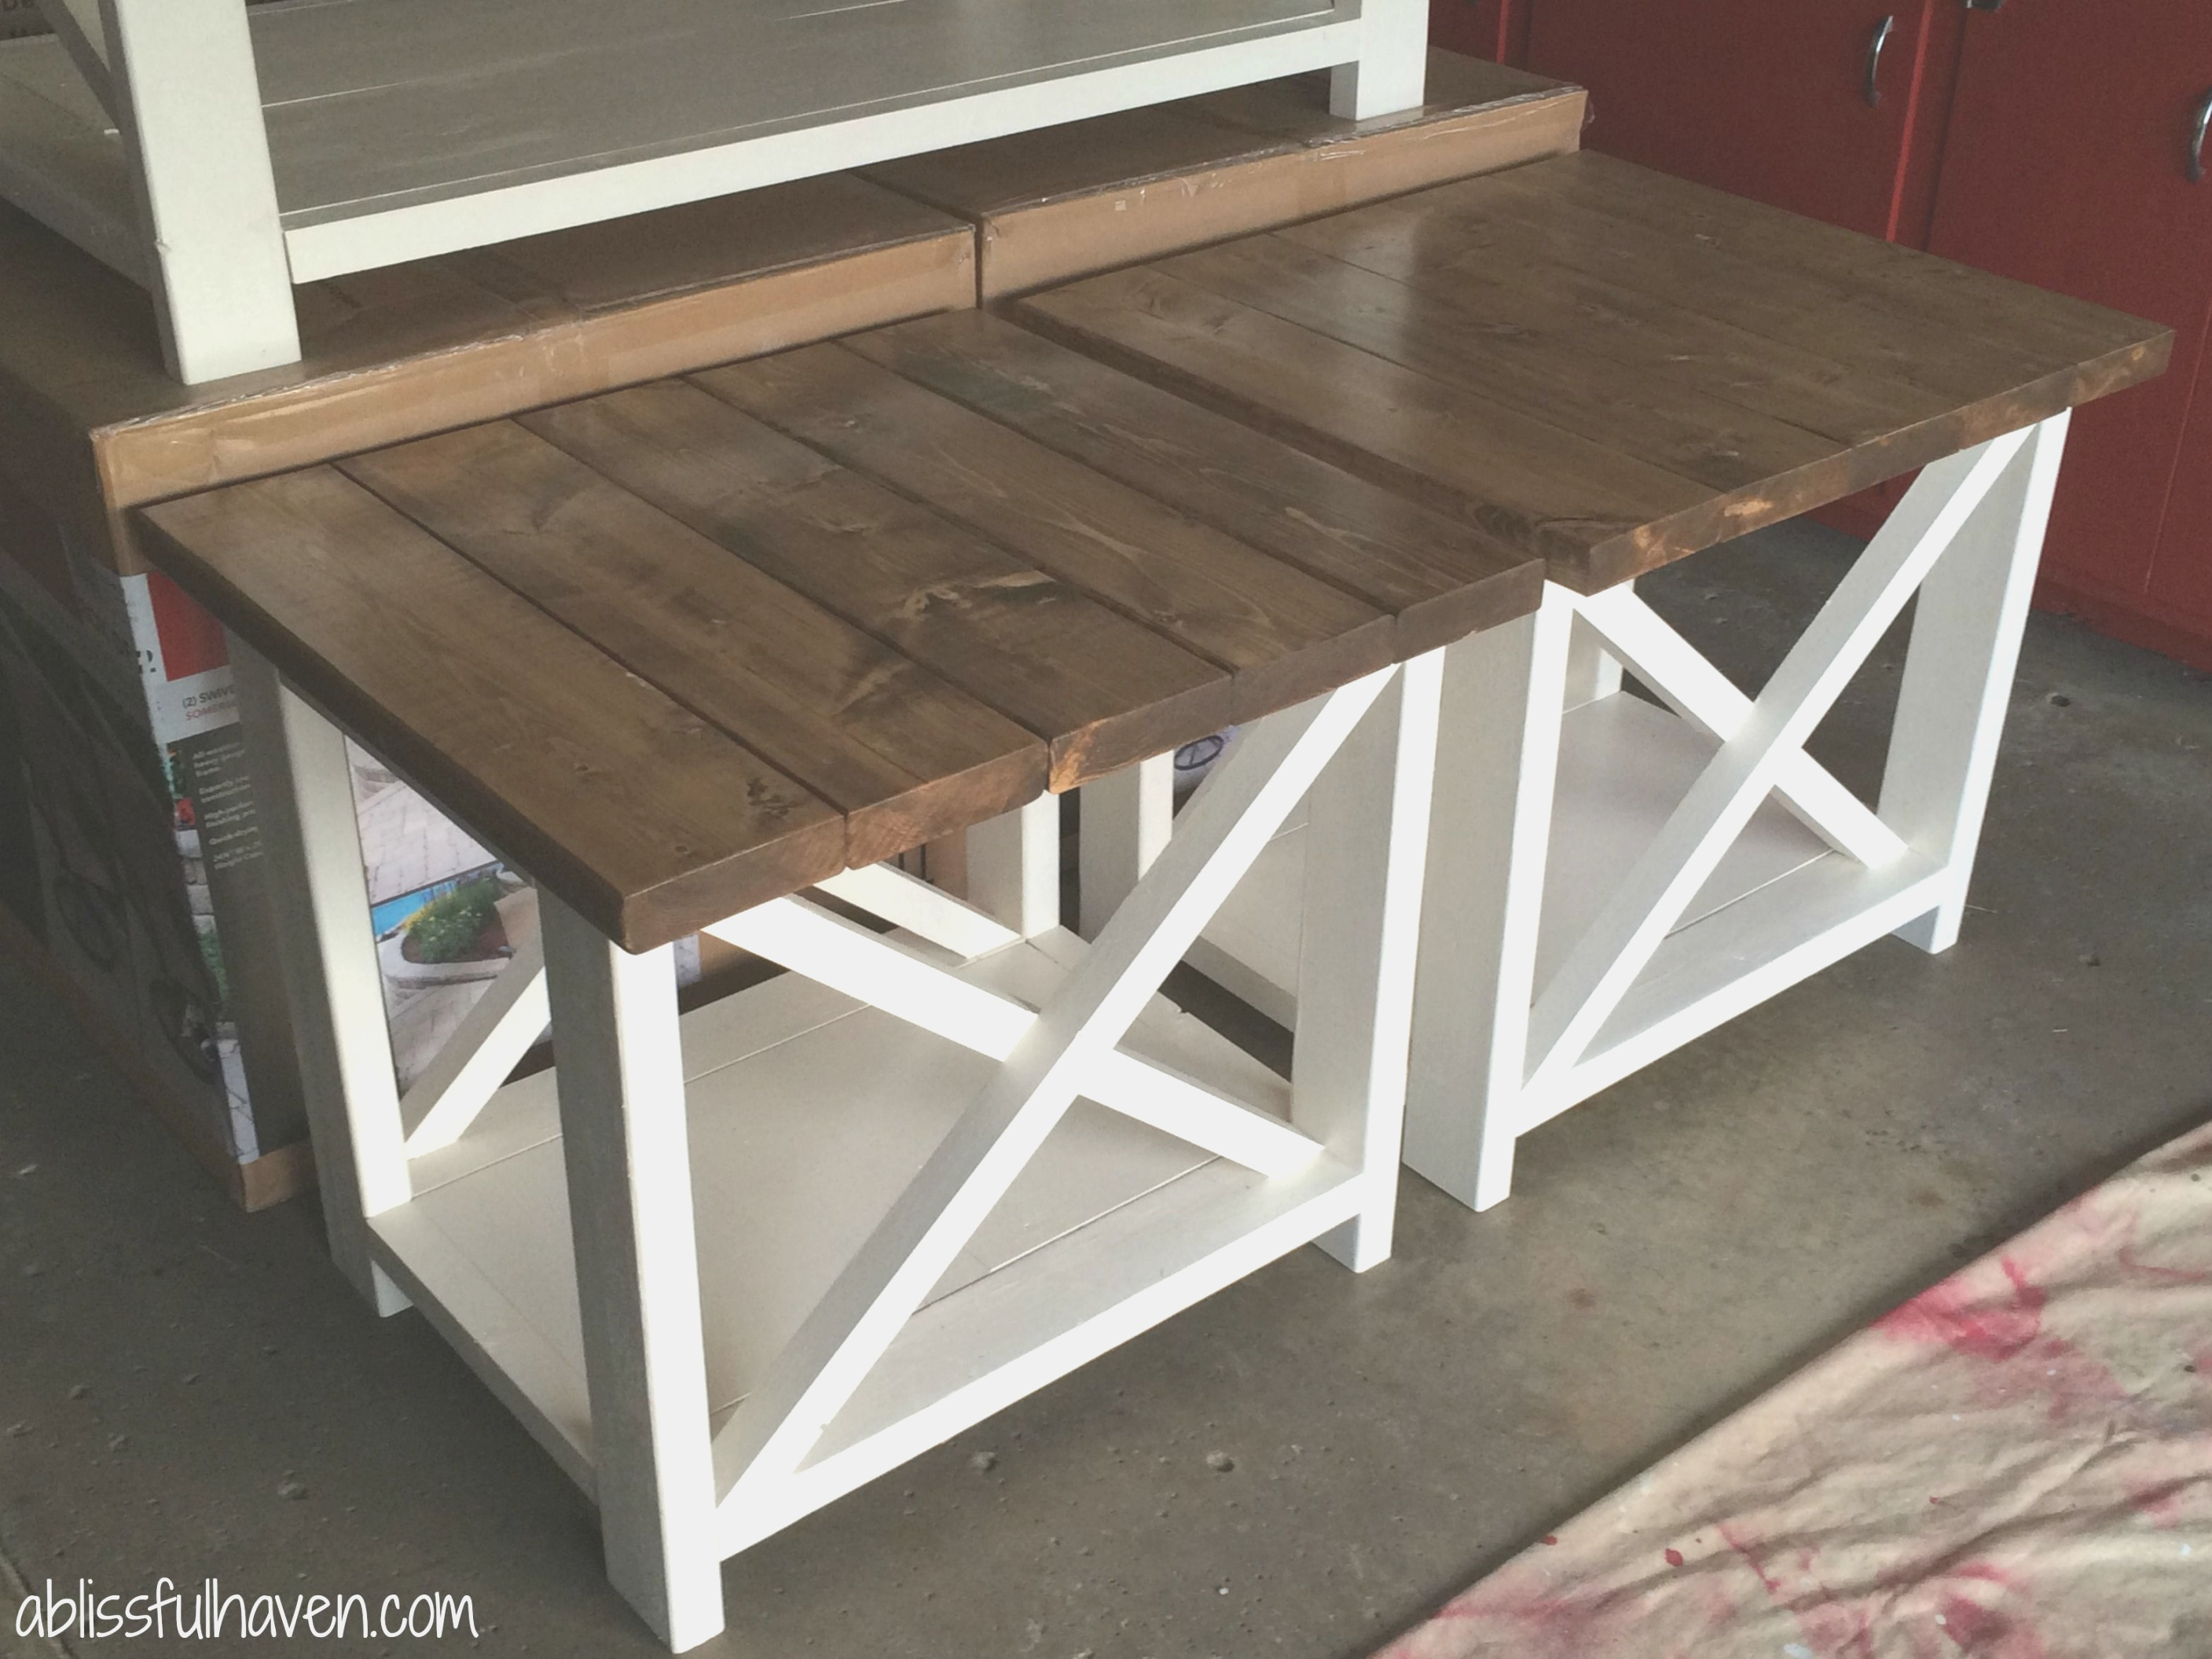 farmhouse end table | Best 25 Diy end tables ideas on Pinterest | Dyi end tables ..